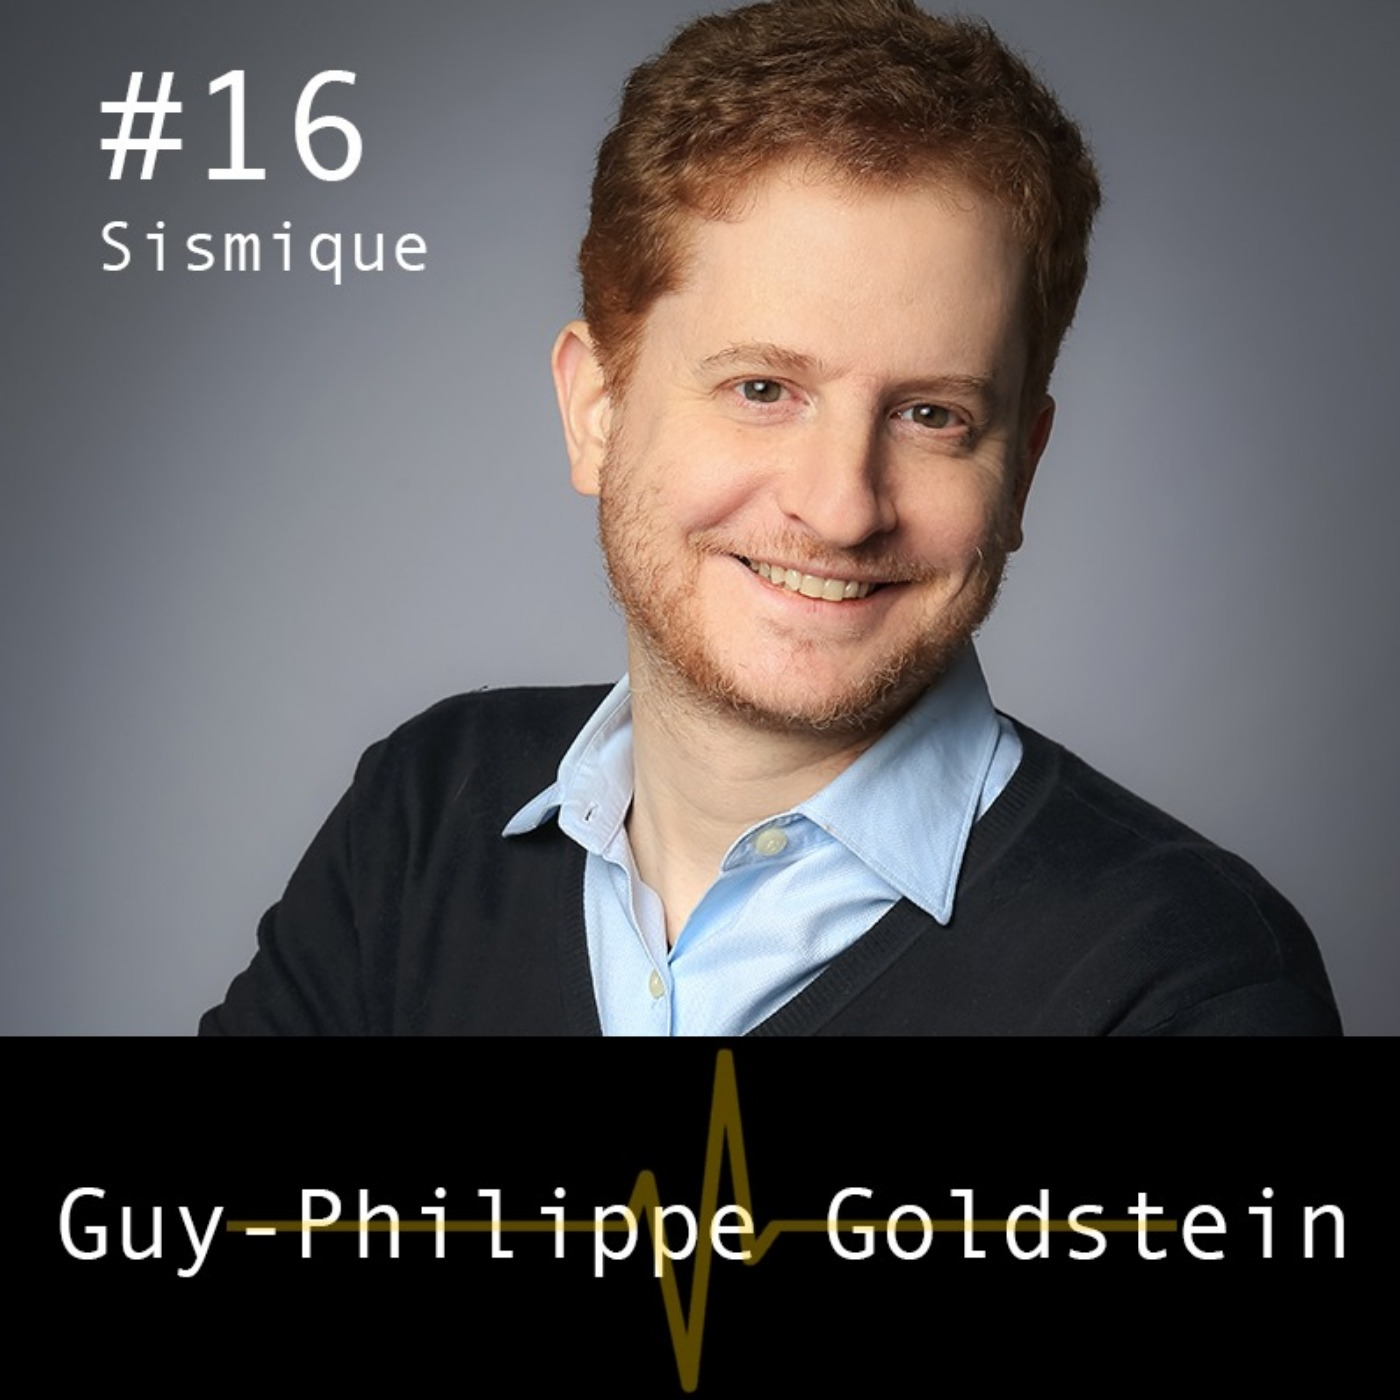 Le risque cyber - Guy-Philippe Goldstein